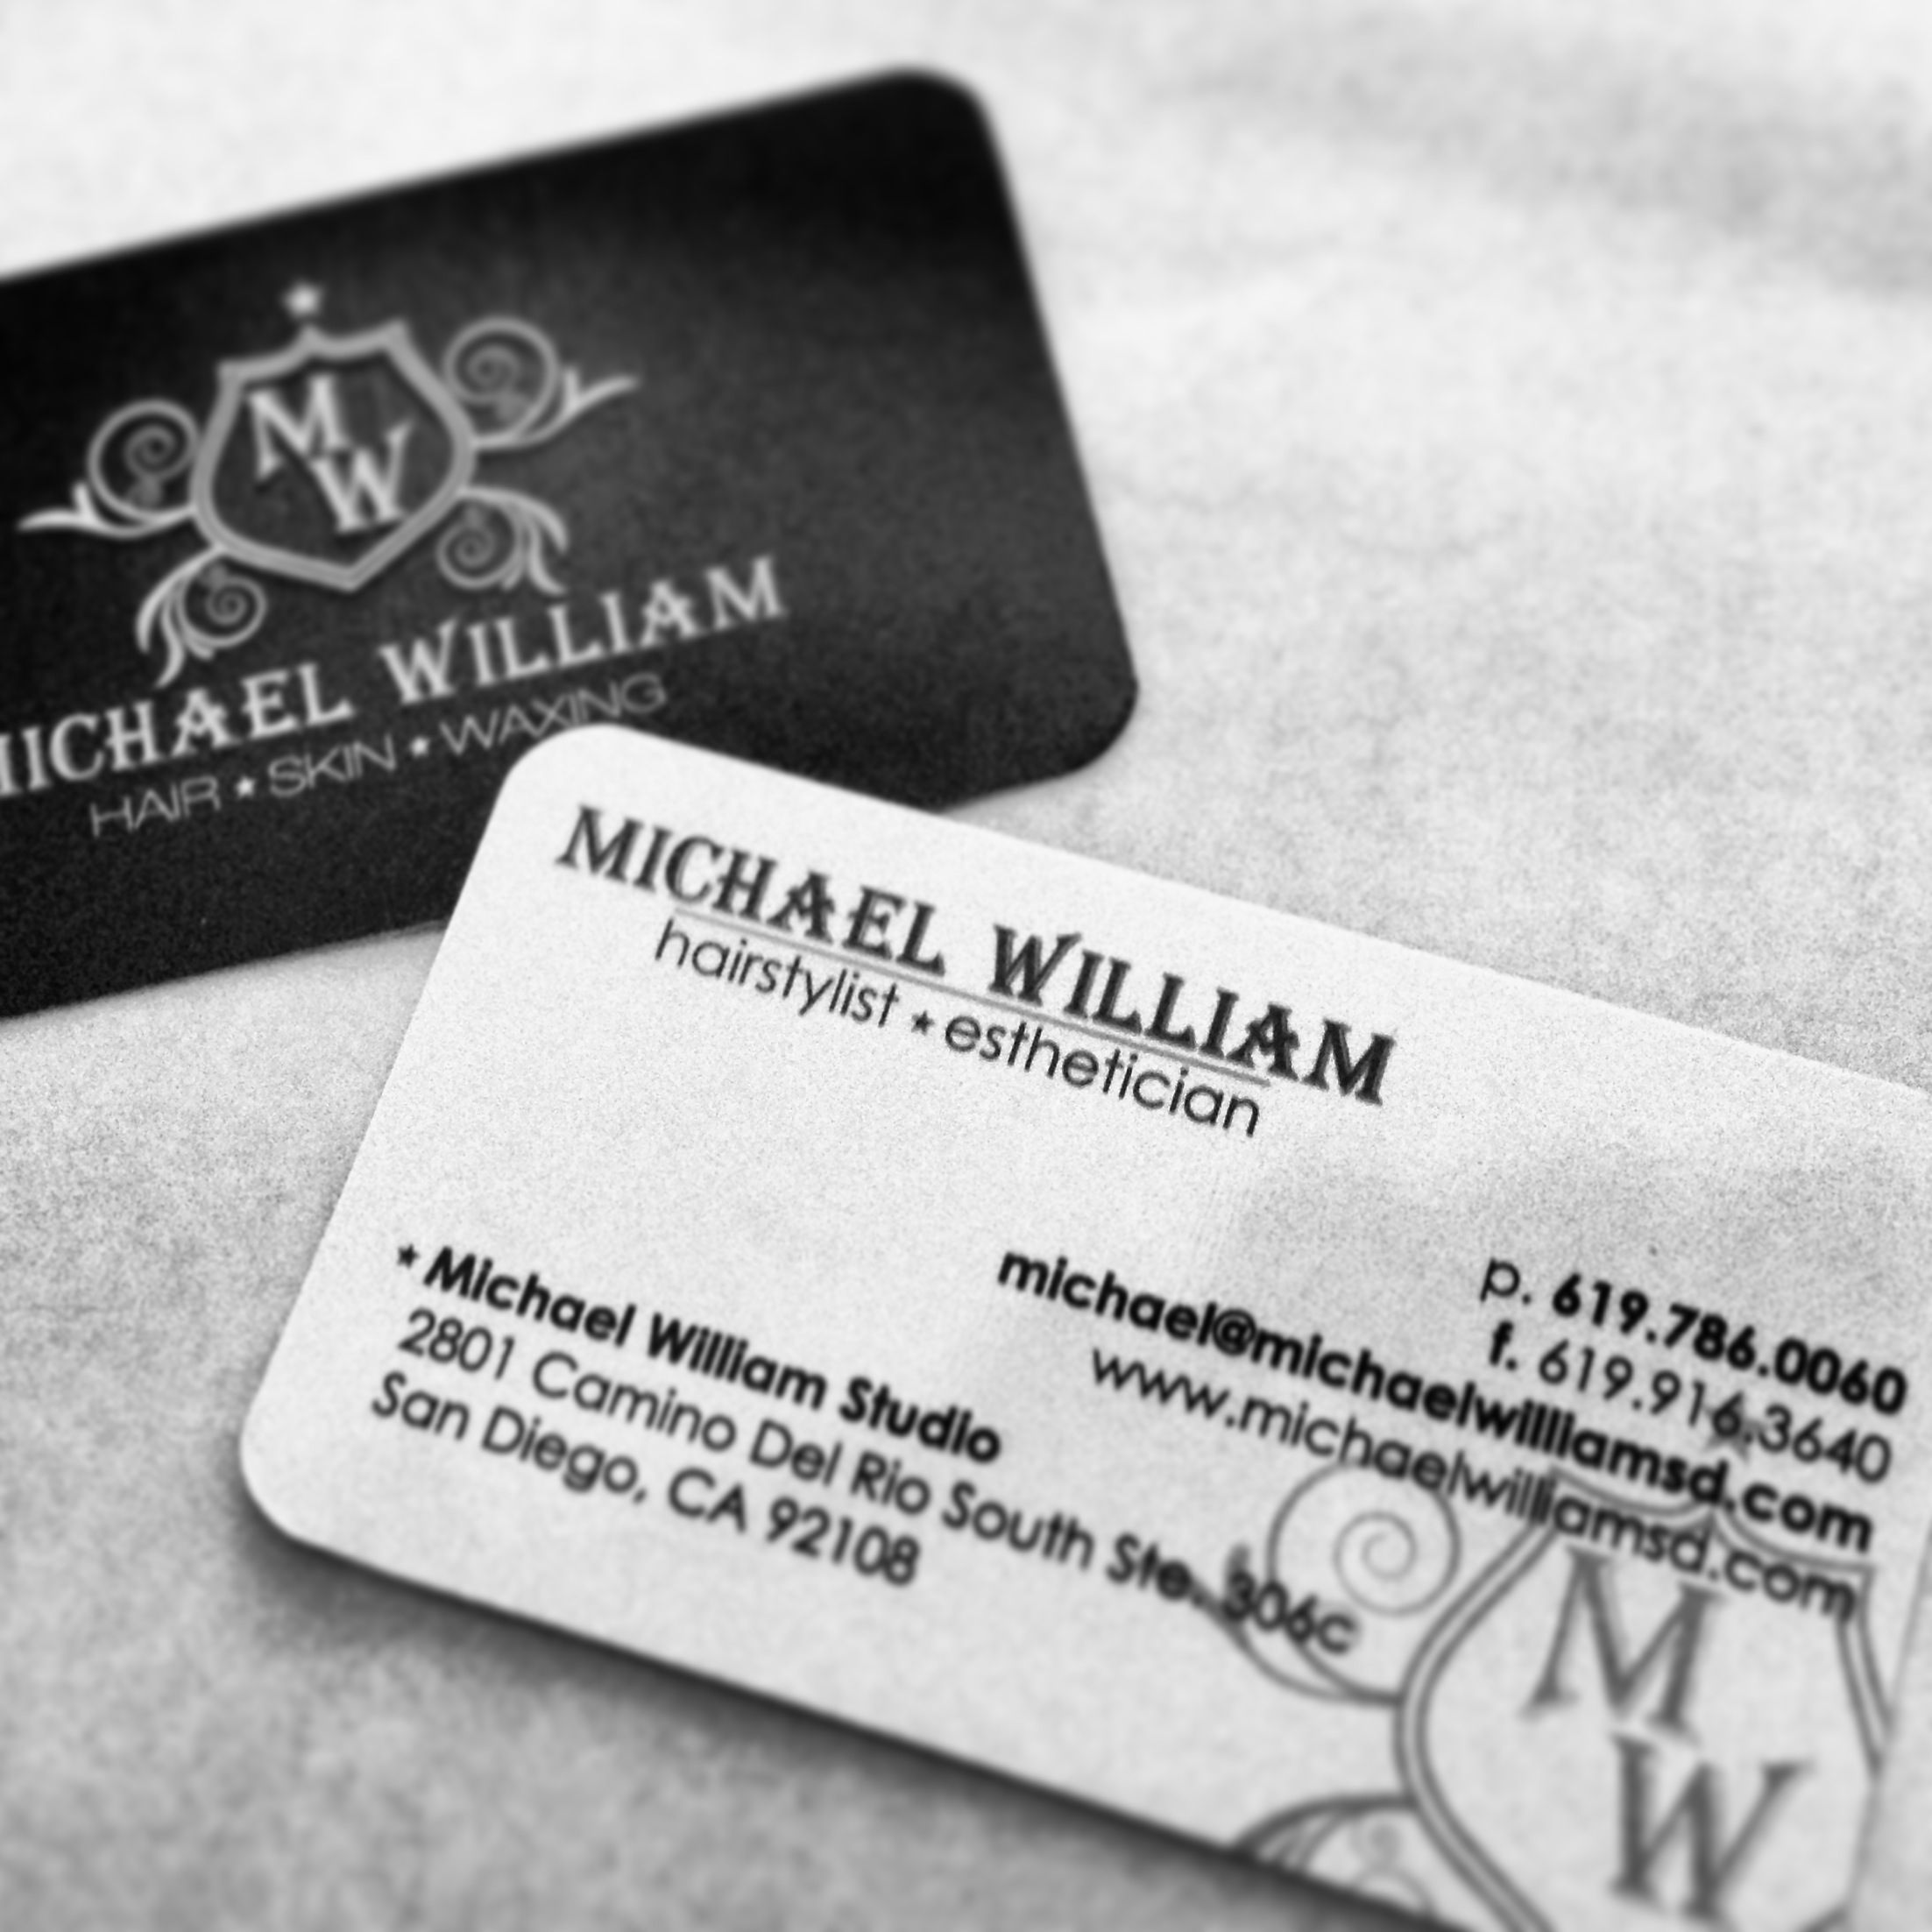 New business cards are alway fun! | Skin Care | Pinterest | Business ...